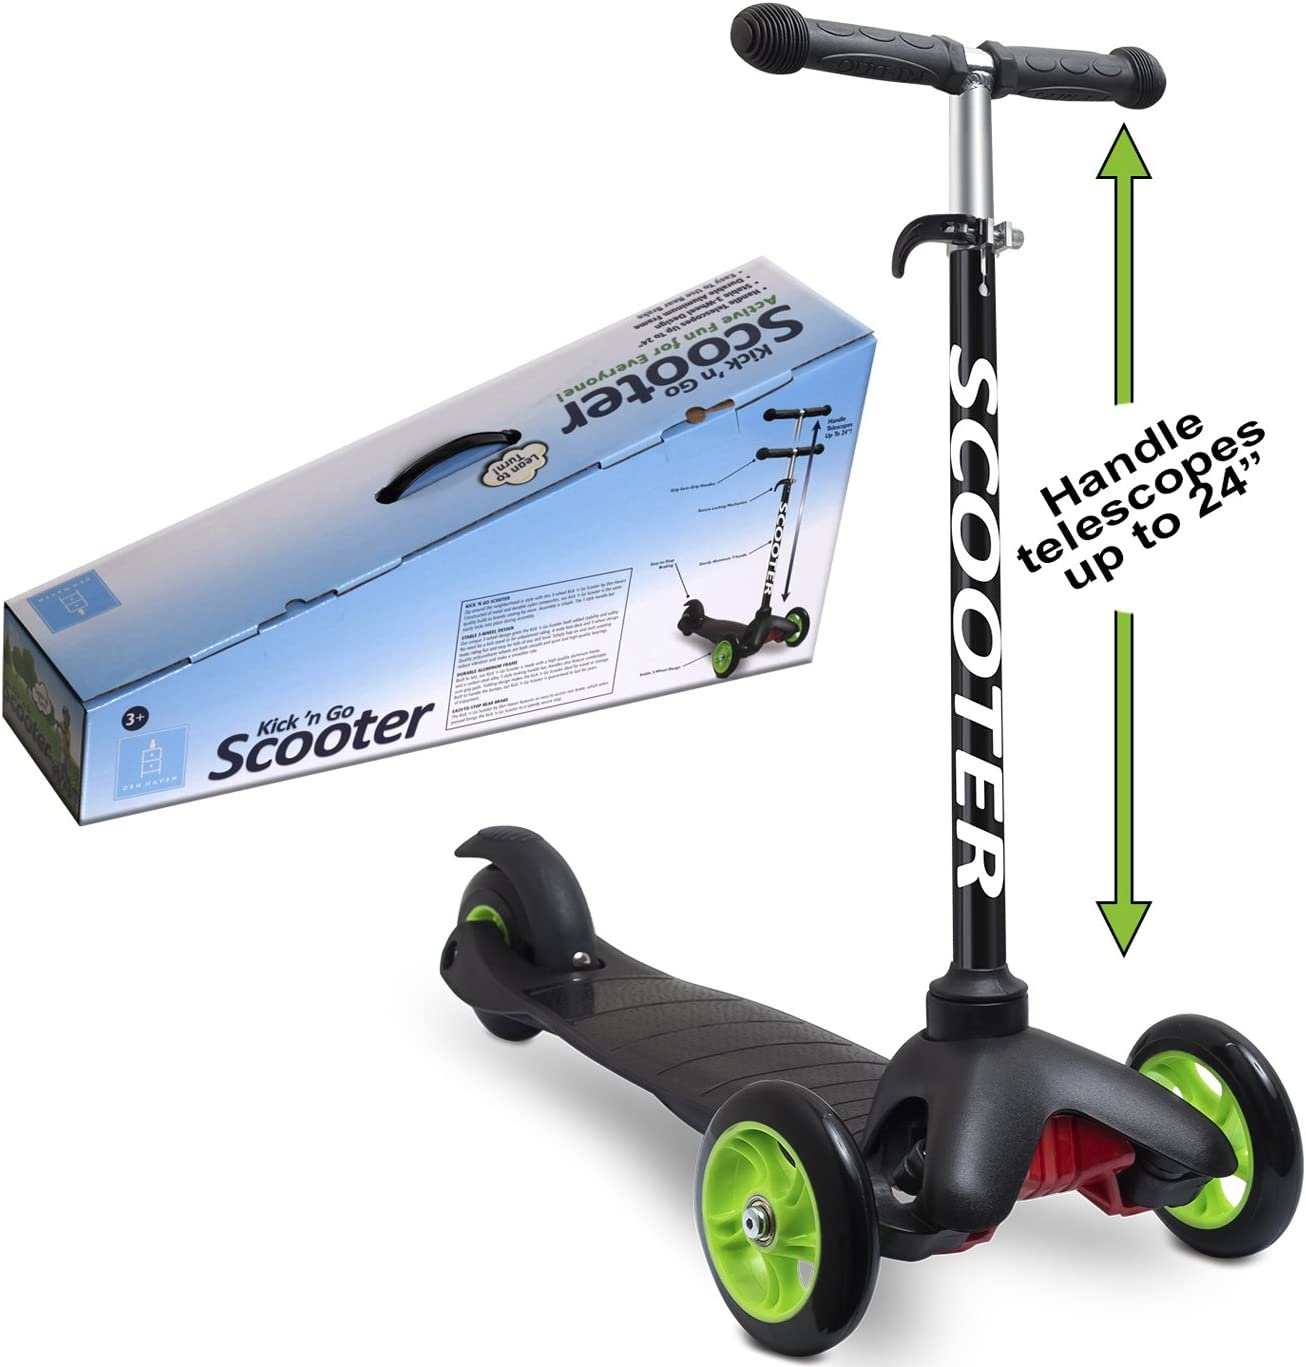 Scooters for Kids Toddler Scooter - Deluxe Aluminum 3 Wheel Glider w/Kick n Go, Lean 2 Turn Wheels, Step 4 Brake, Toddlers Training Three Wheeled Kid ...